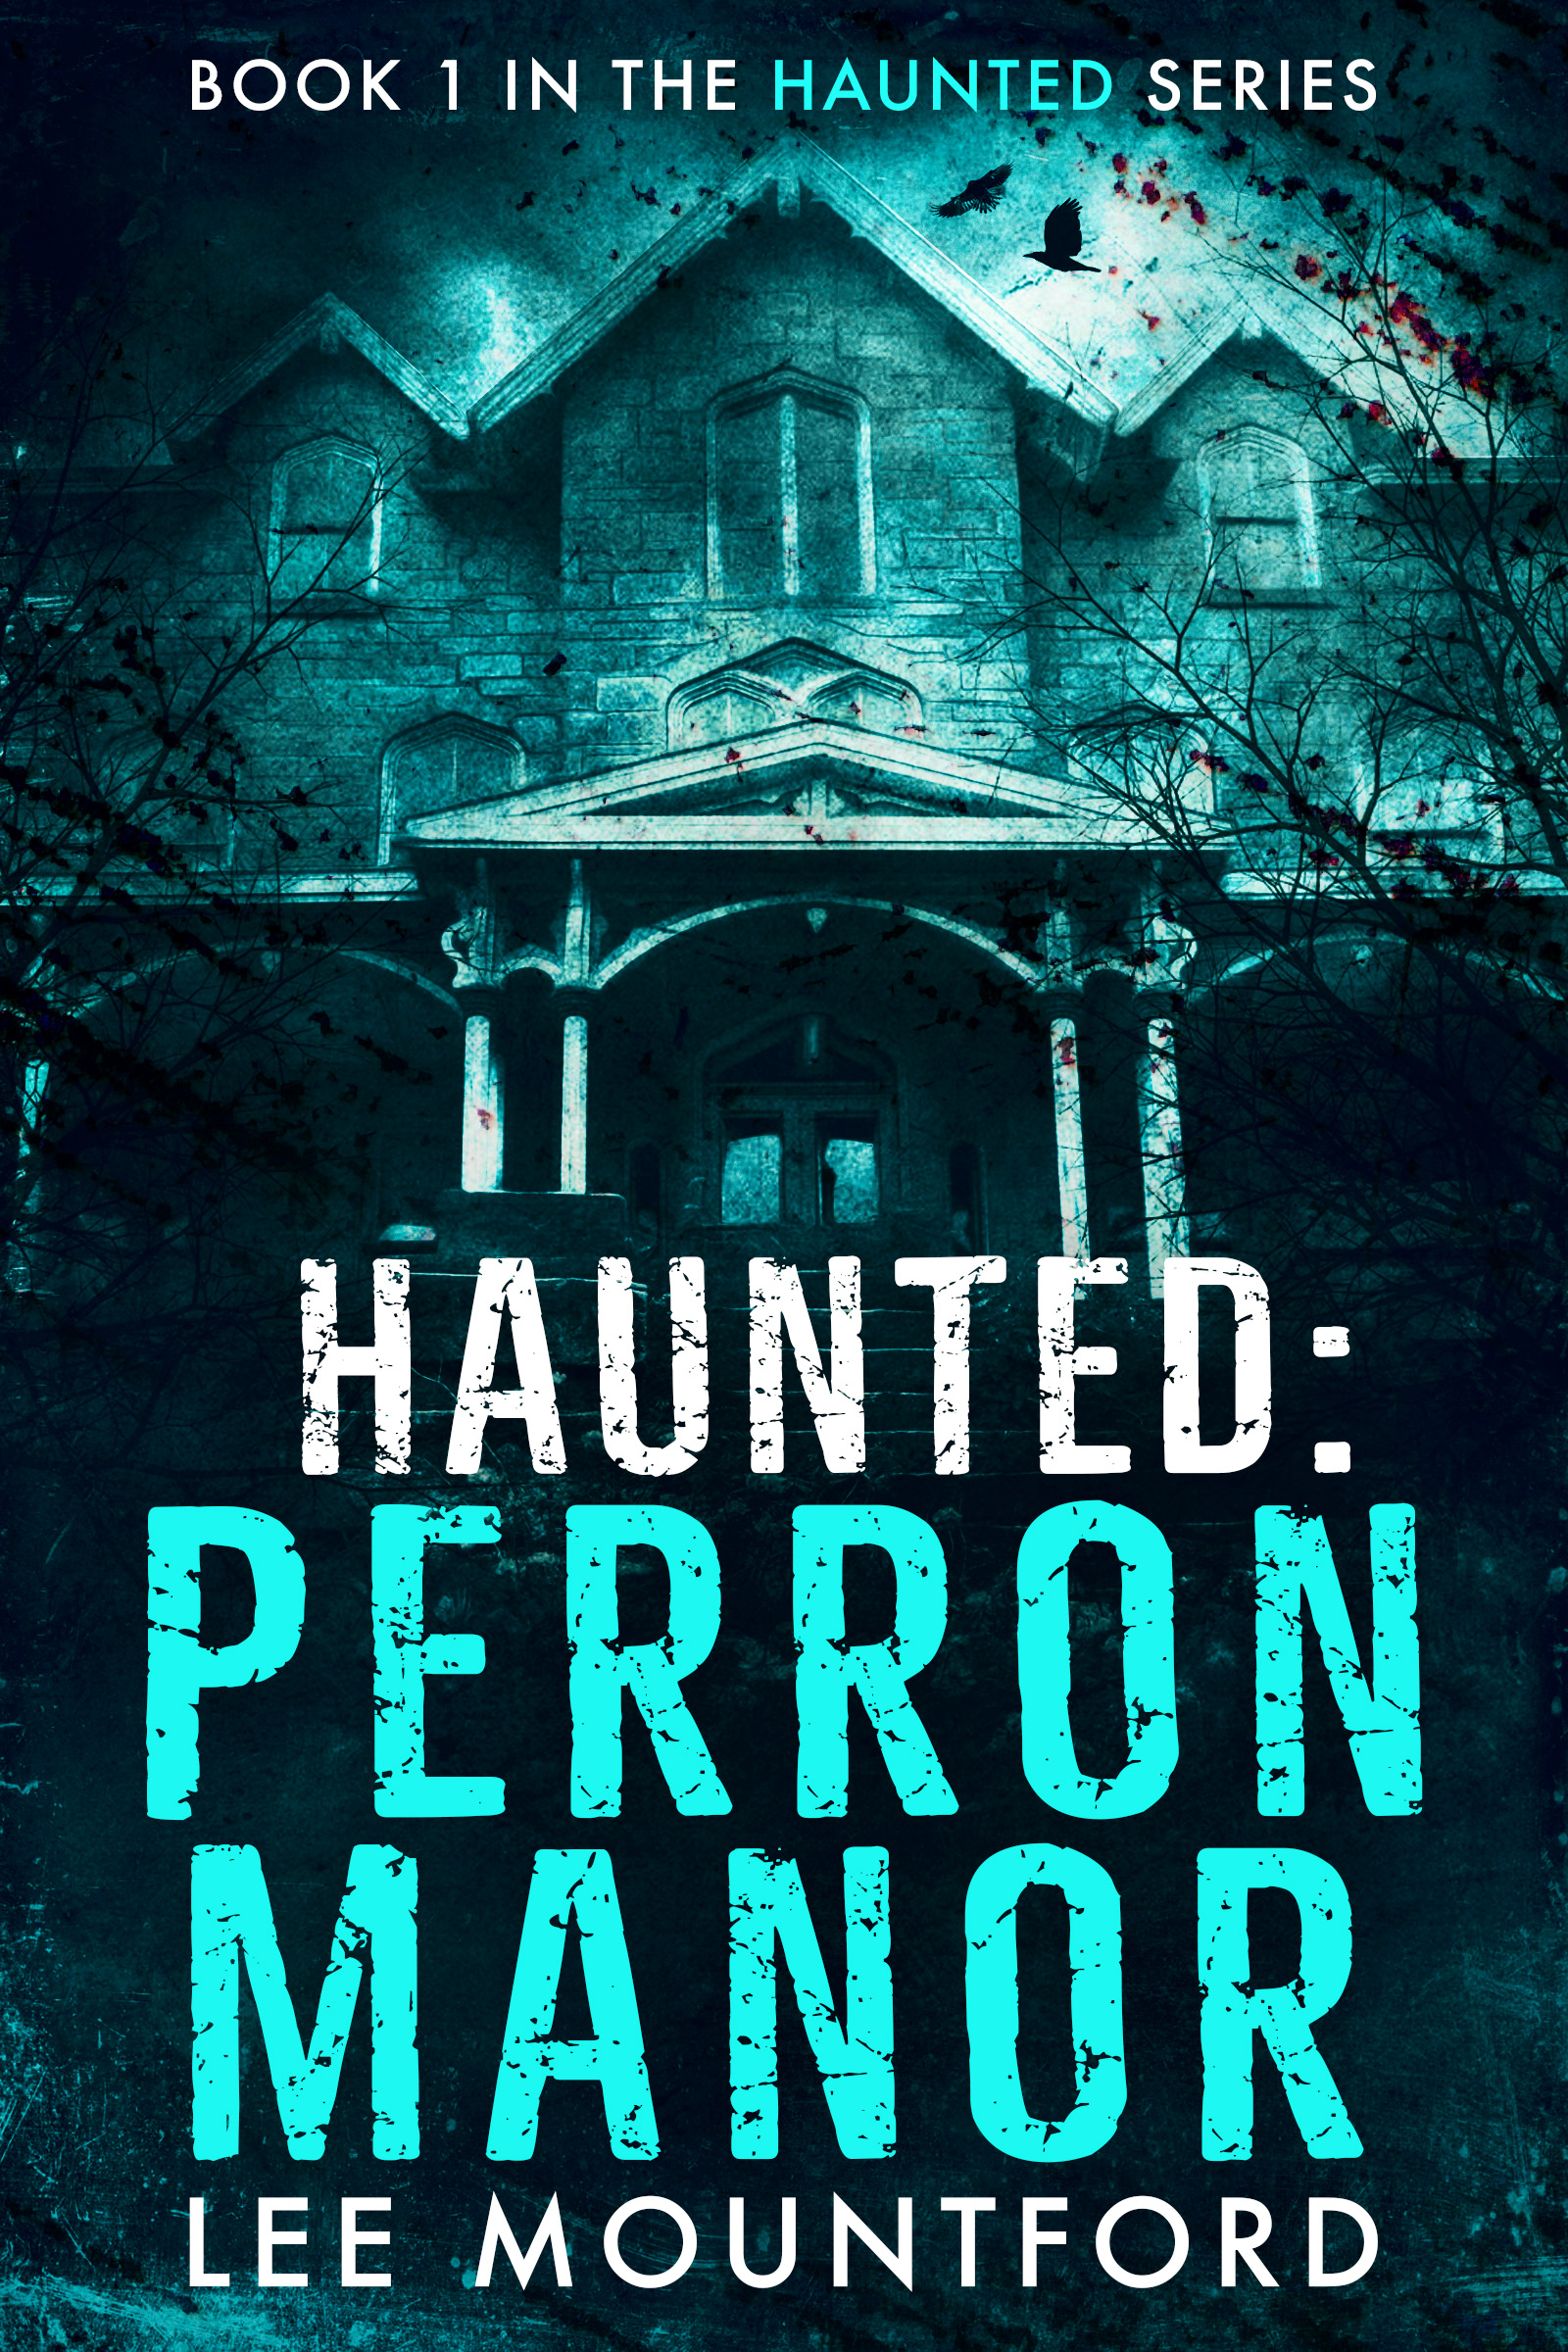 Haunted: Perron Manor by Lee Mountford